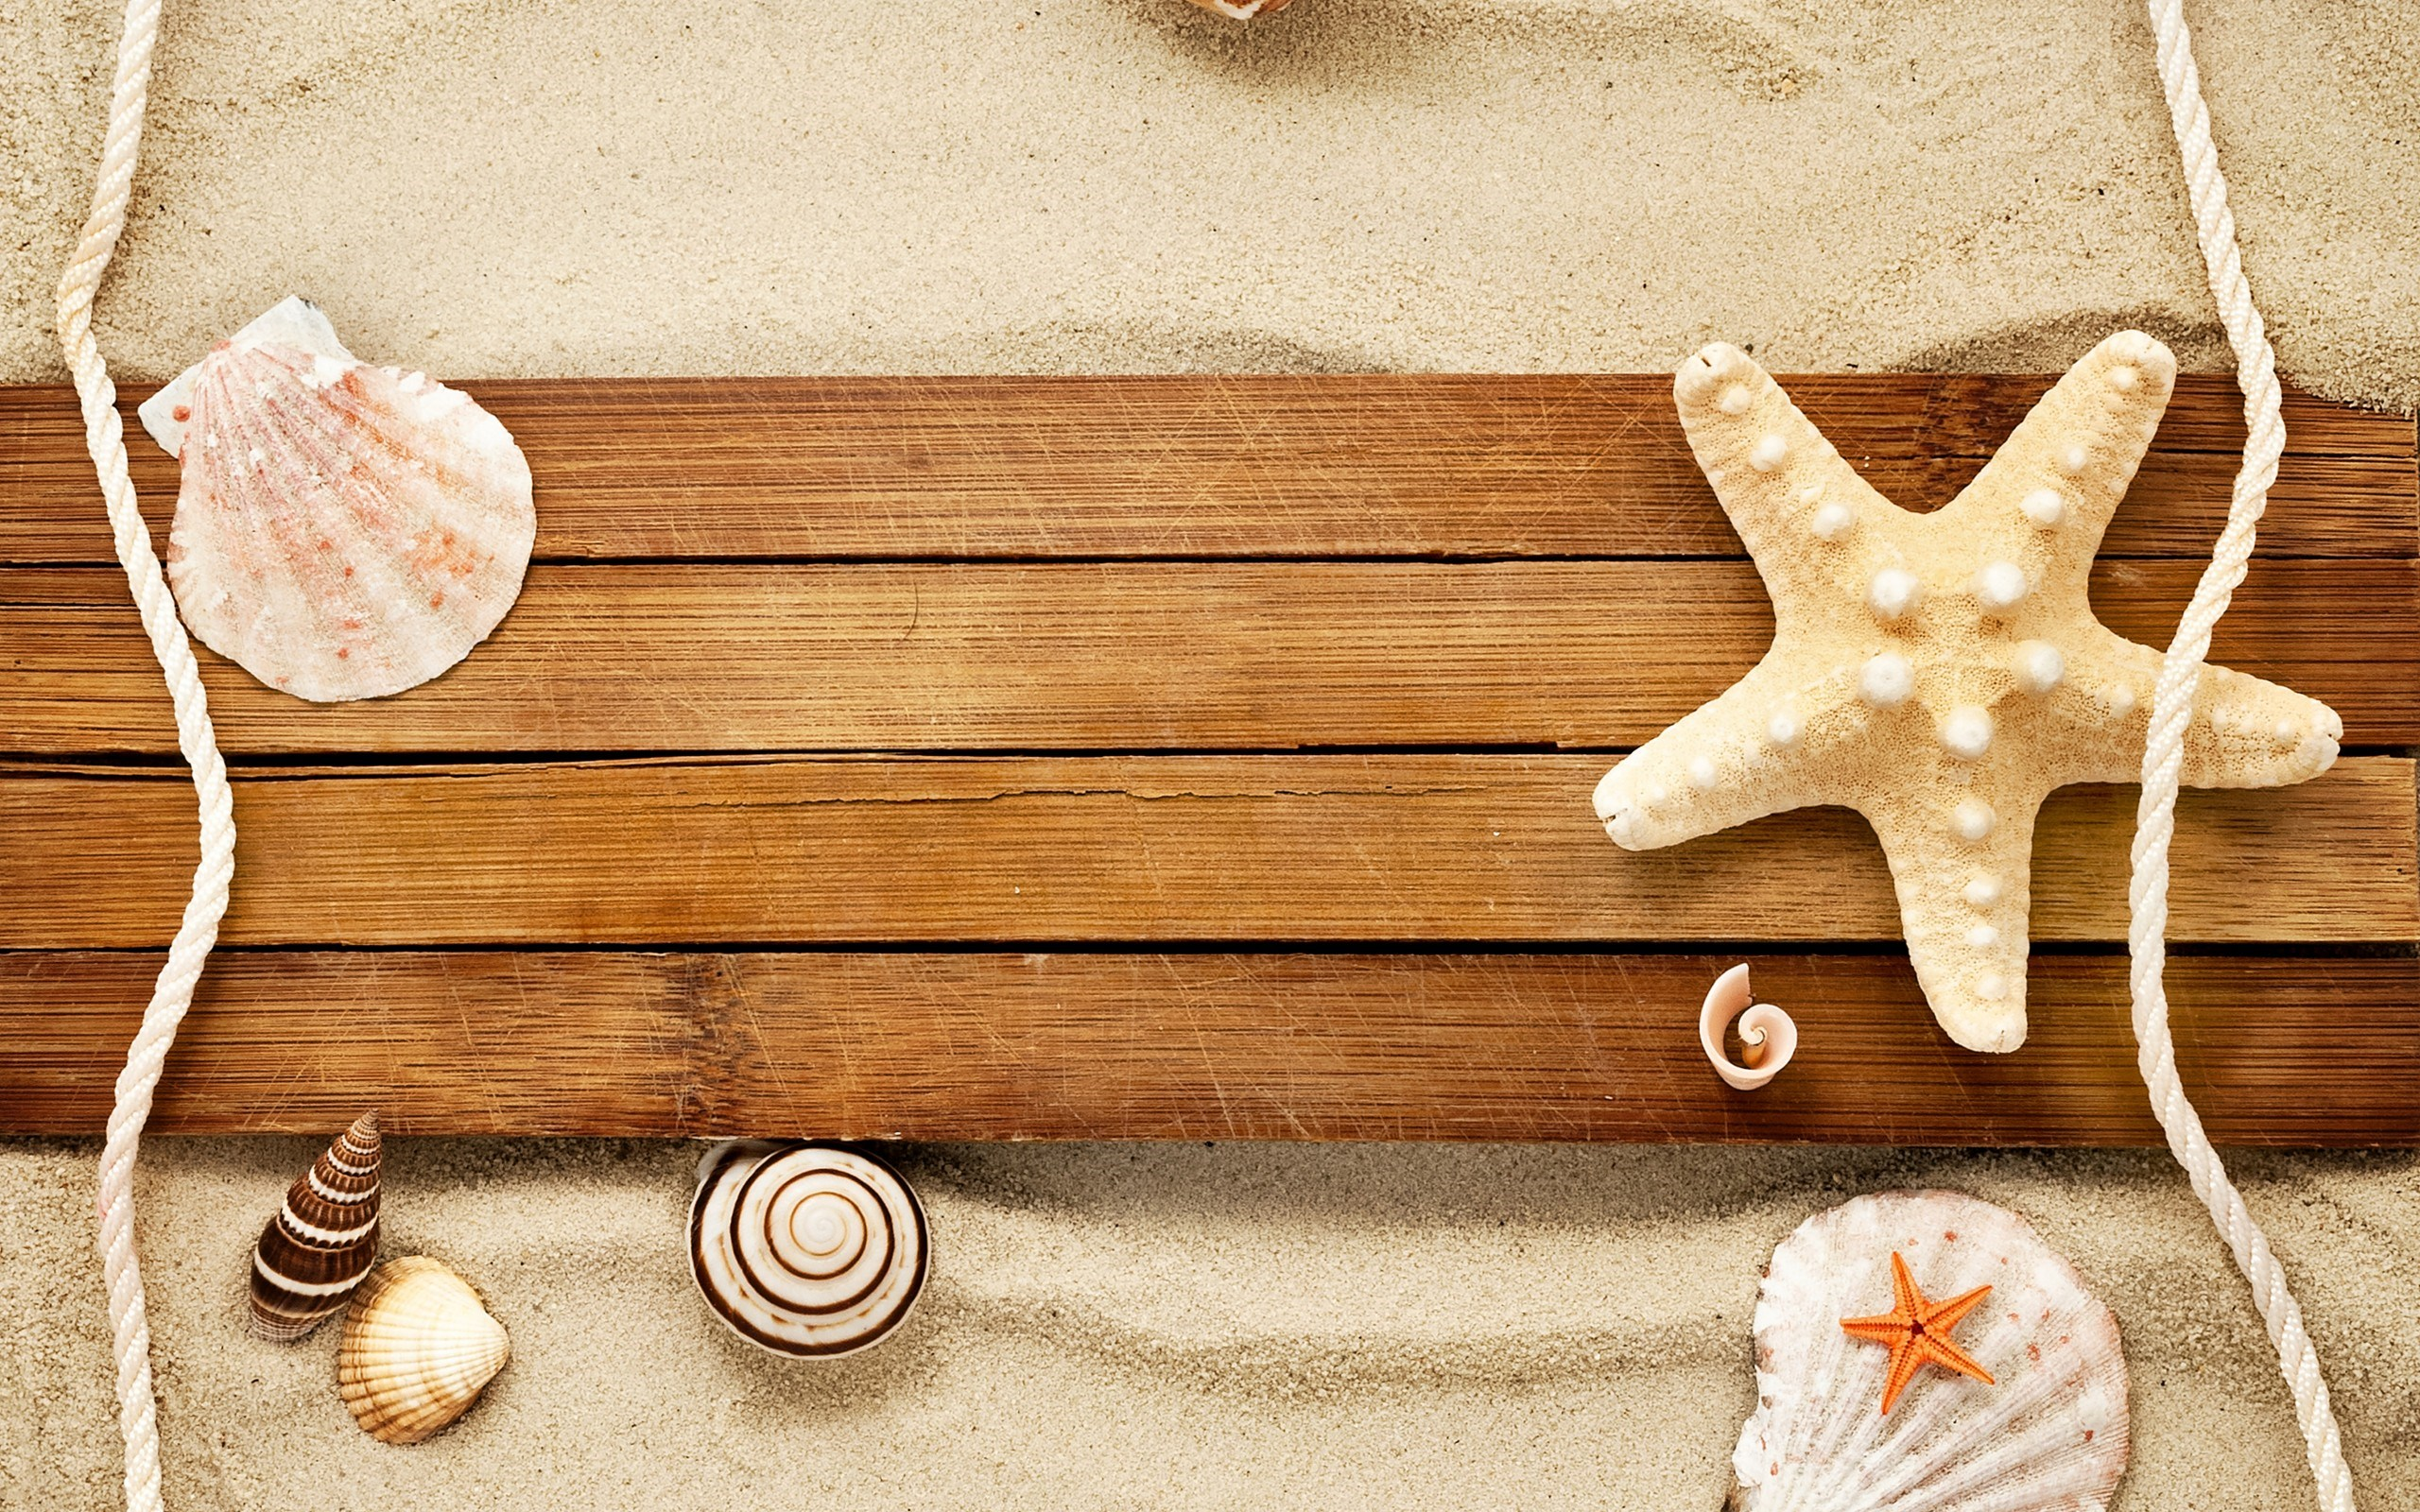 7031409-sand-shells-snail-starfish-beach